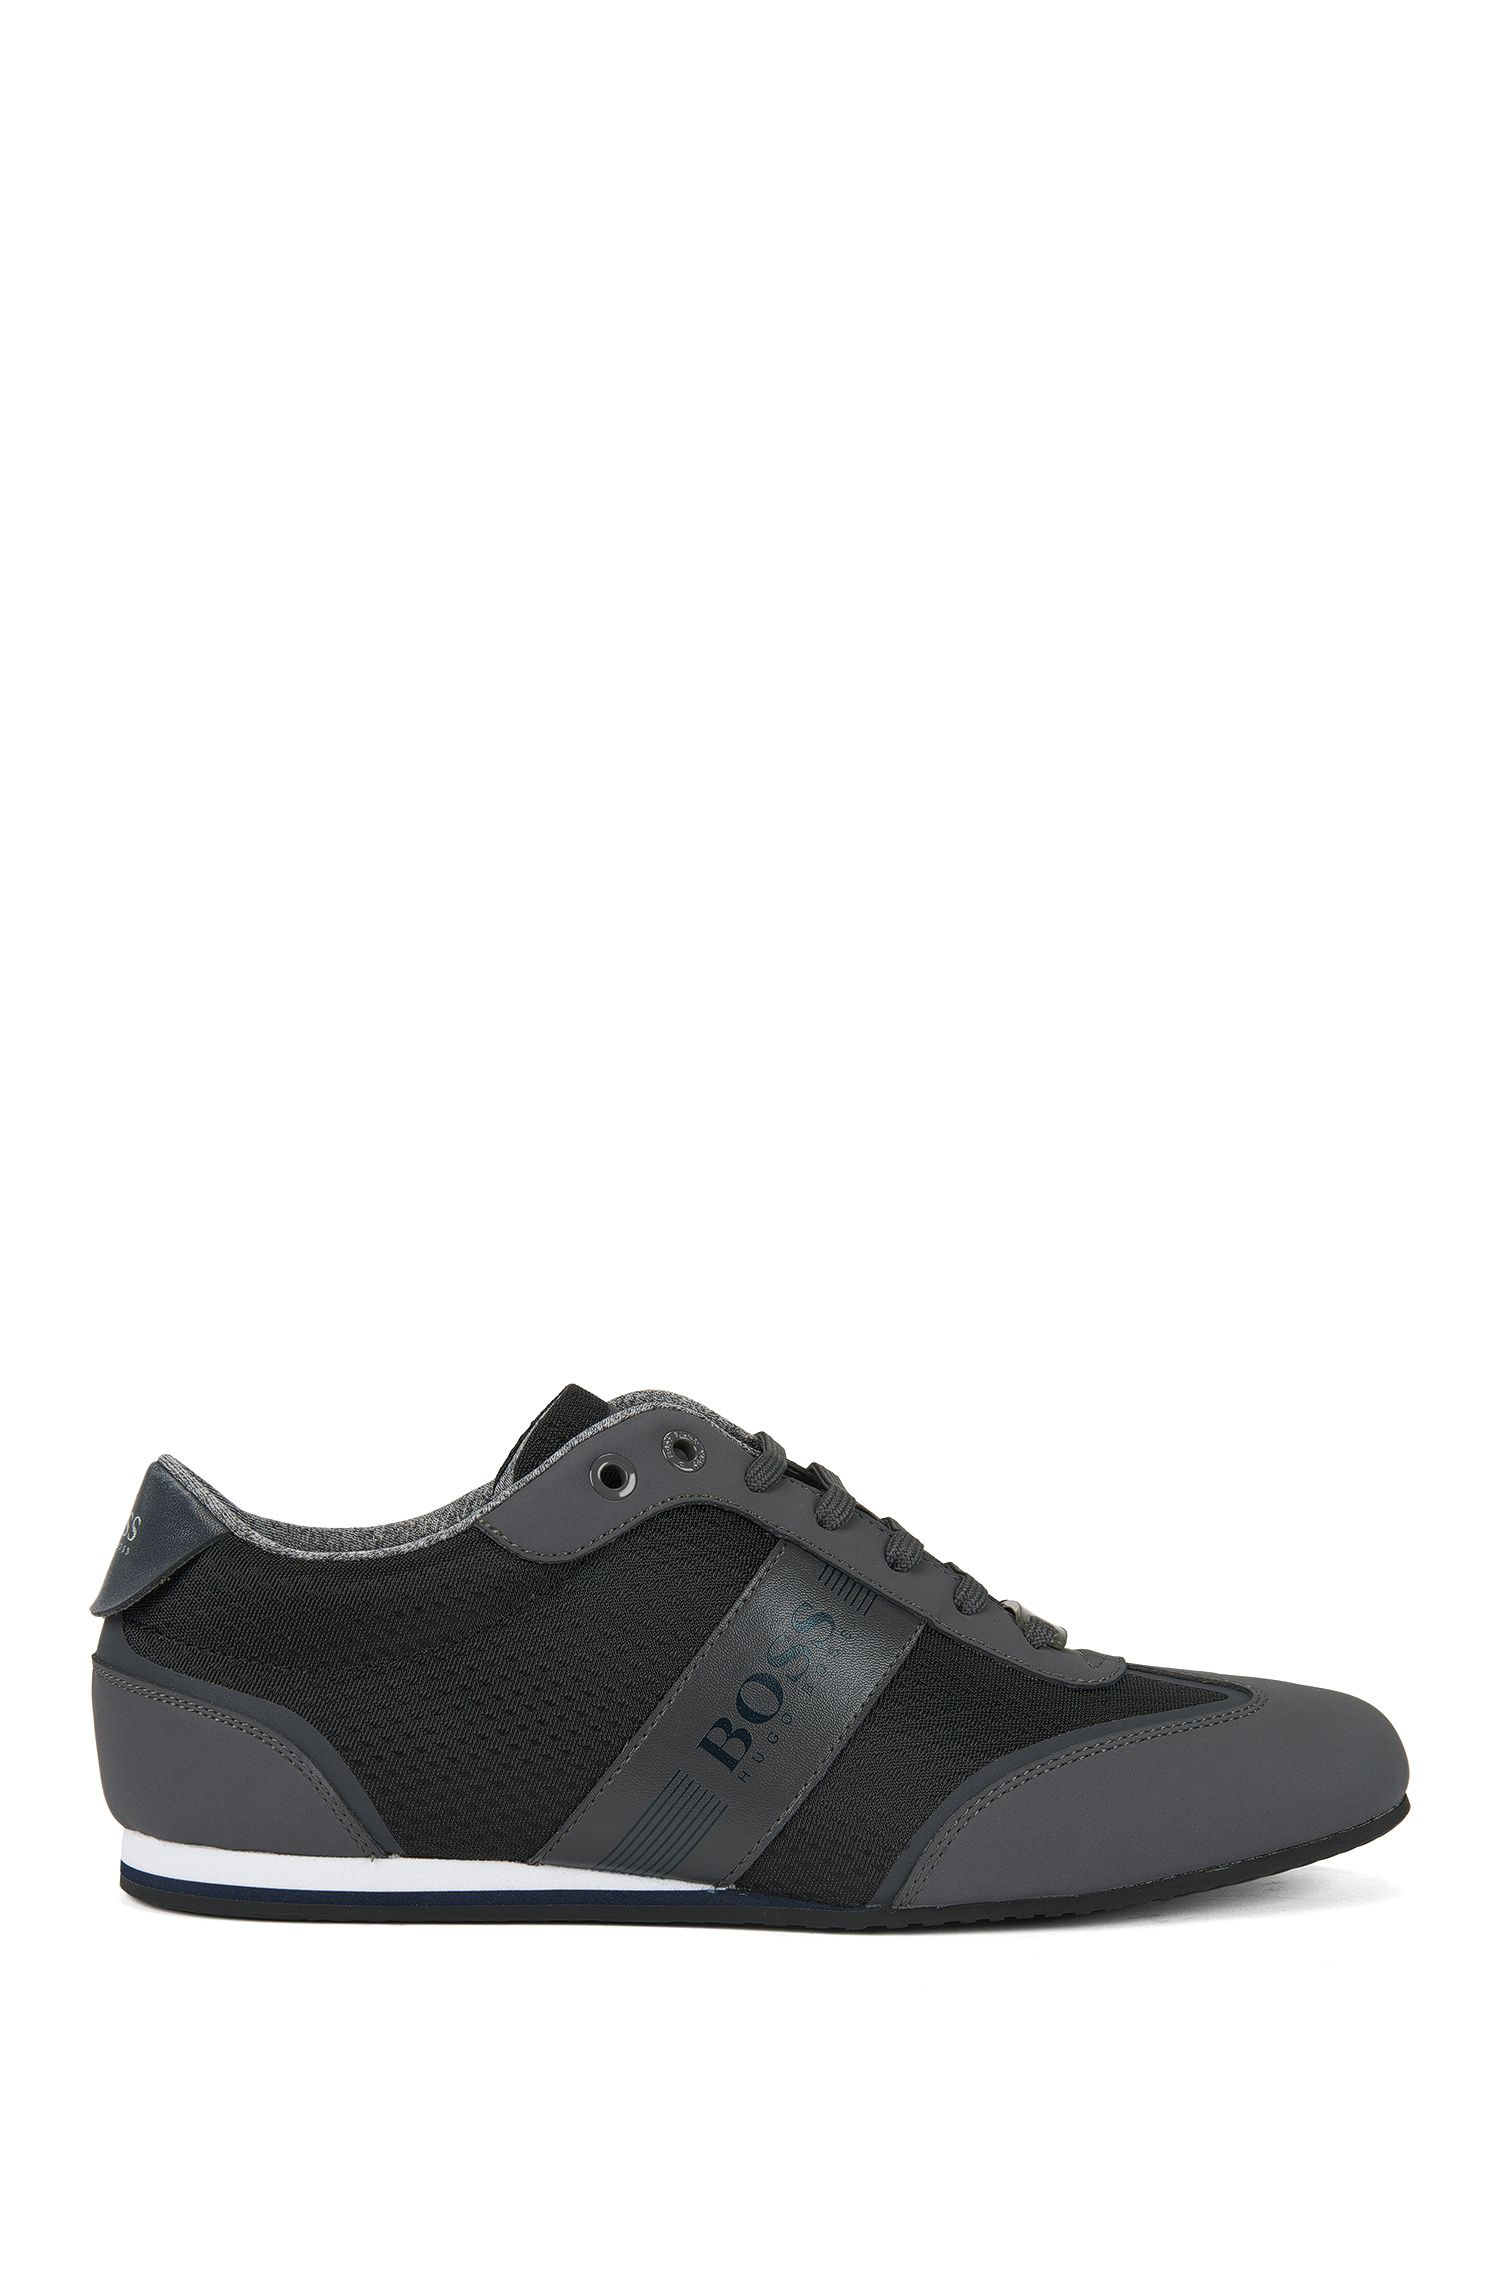 Low-top trainers in nylon with faux-nubuck wingtip detail